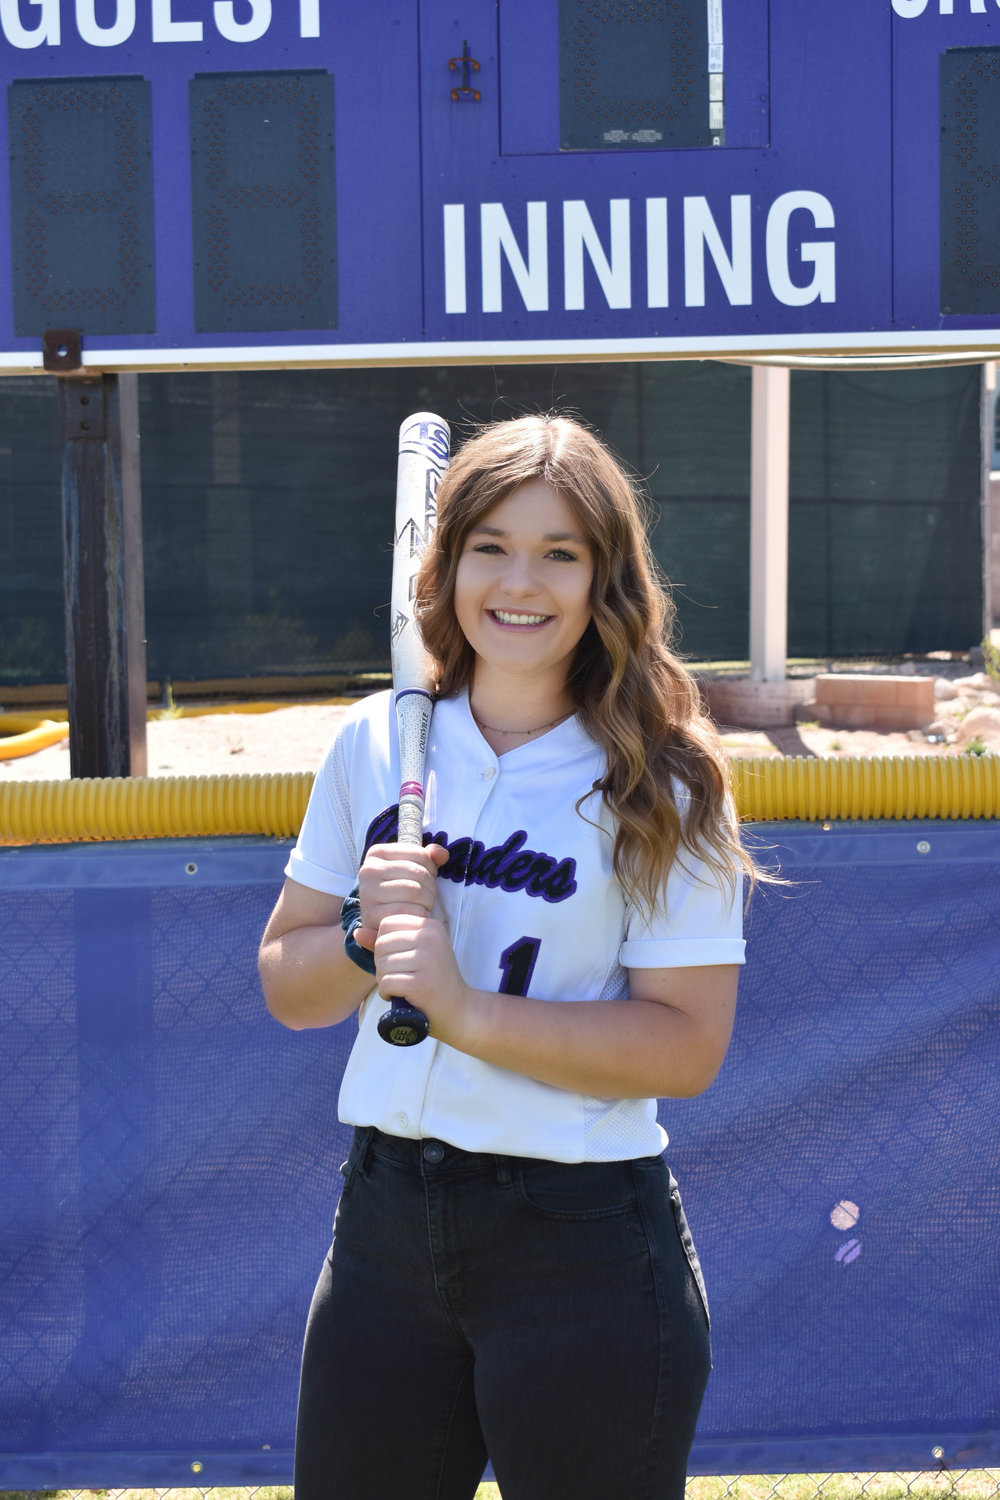 Northwest Christian senior Jordan Van Metre led the Crusaders' softball team in batting average, home runs and RBI.